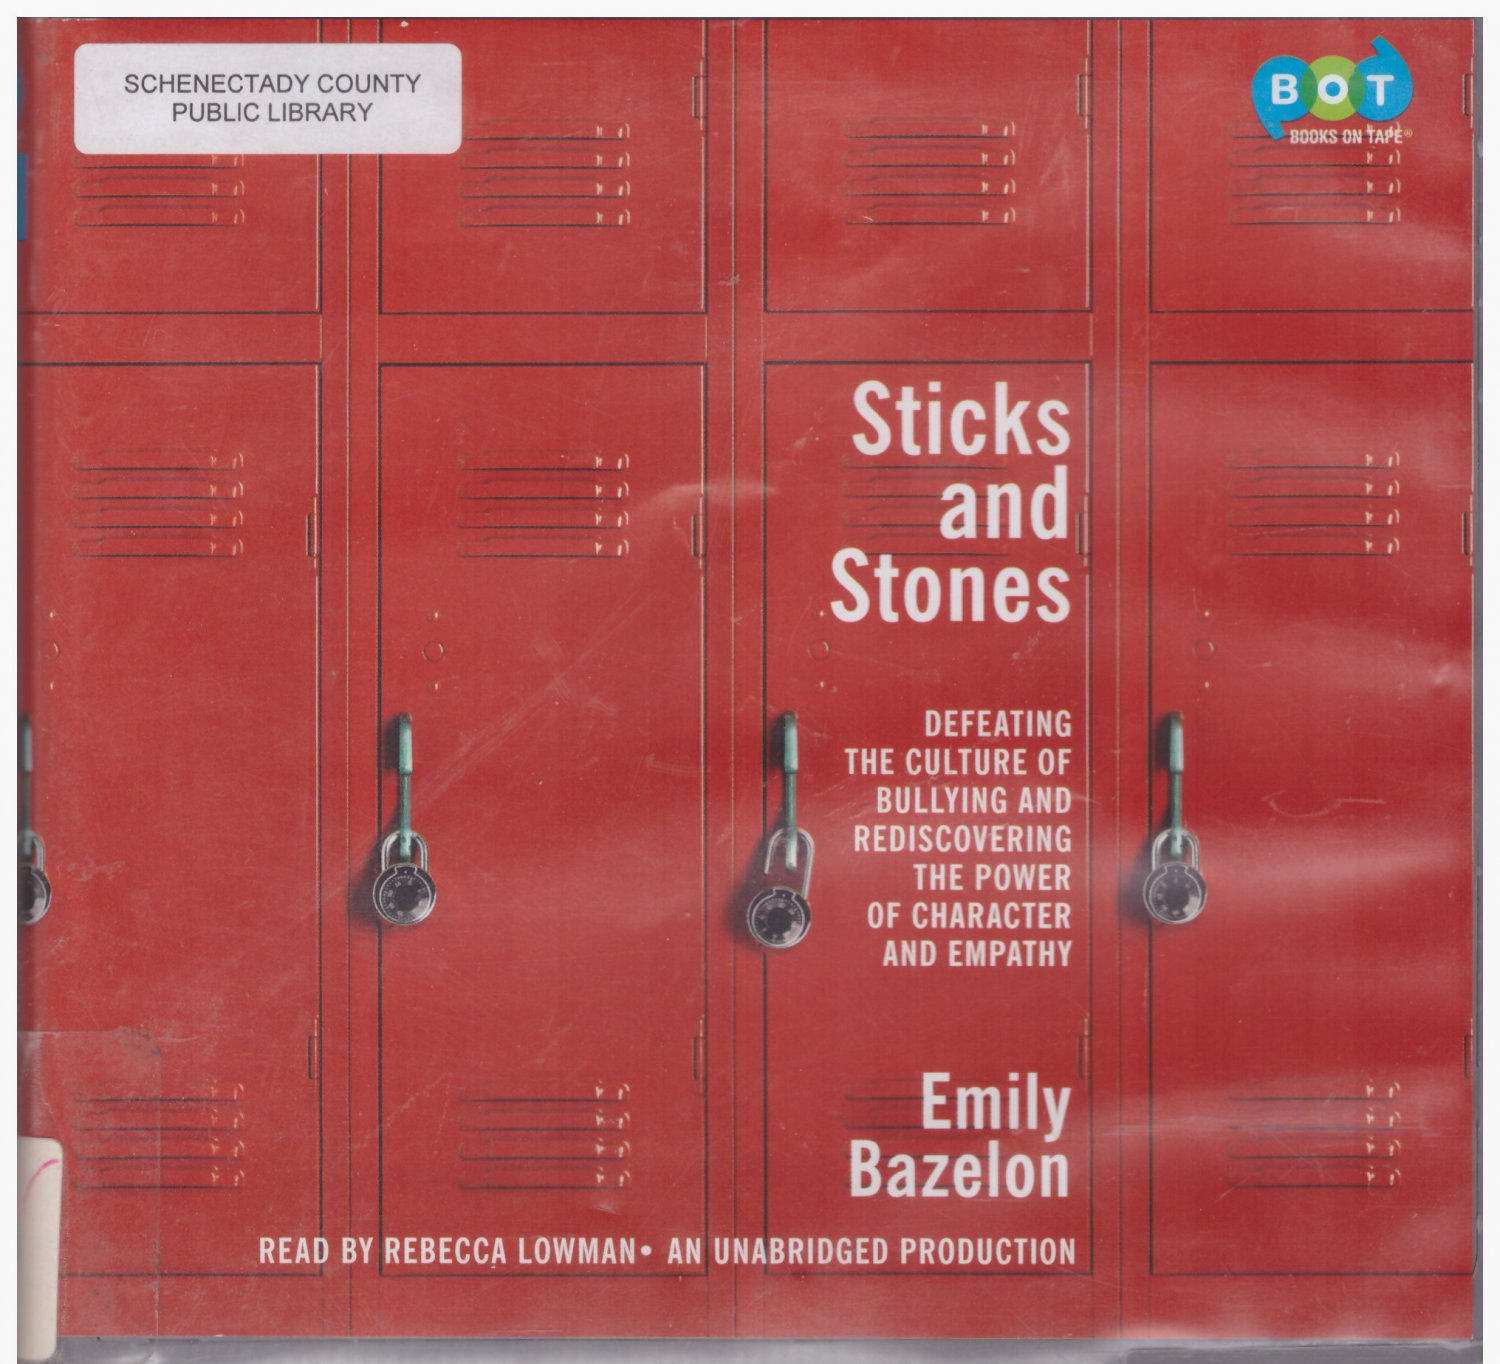 Sticks and Stones Defeating the Culture of Bullying  (audio book cds) Emily Bazelon